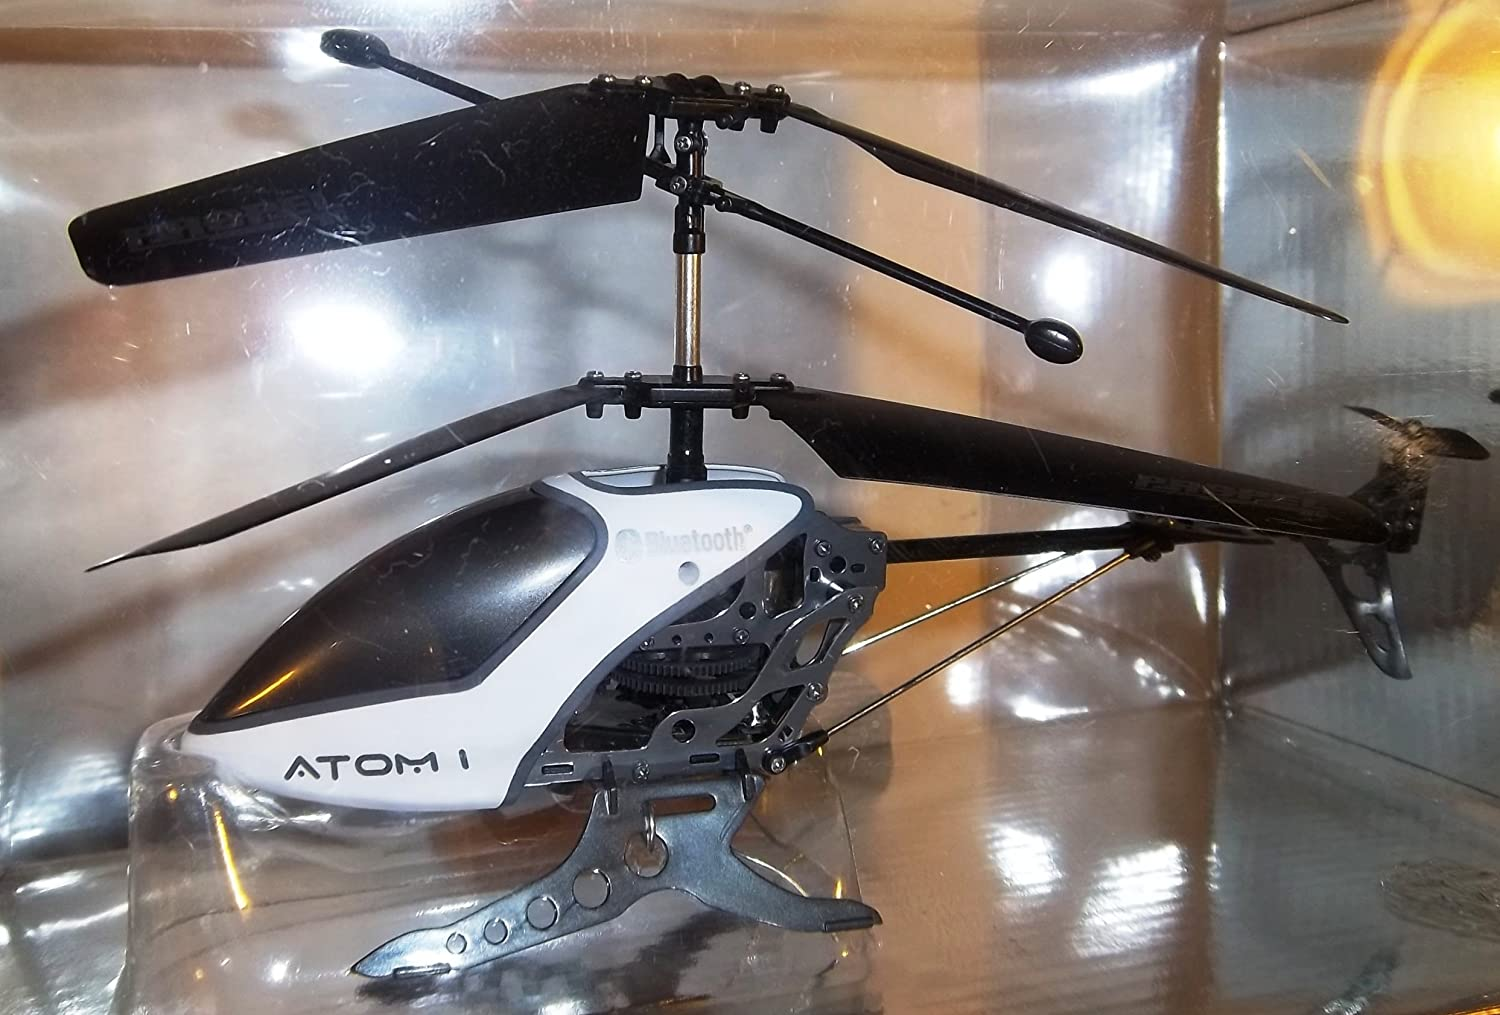 Amazon Propel Rc Atom 1 Helicopter With Gyro Stabilization And